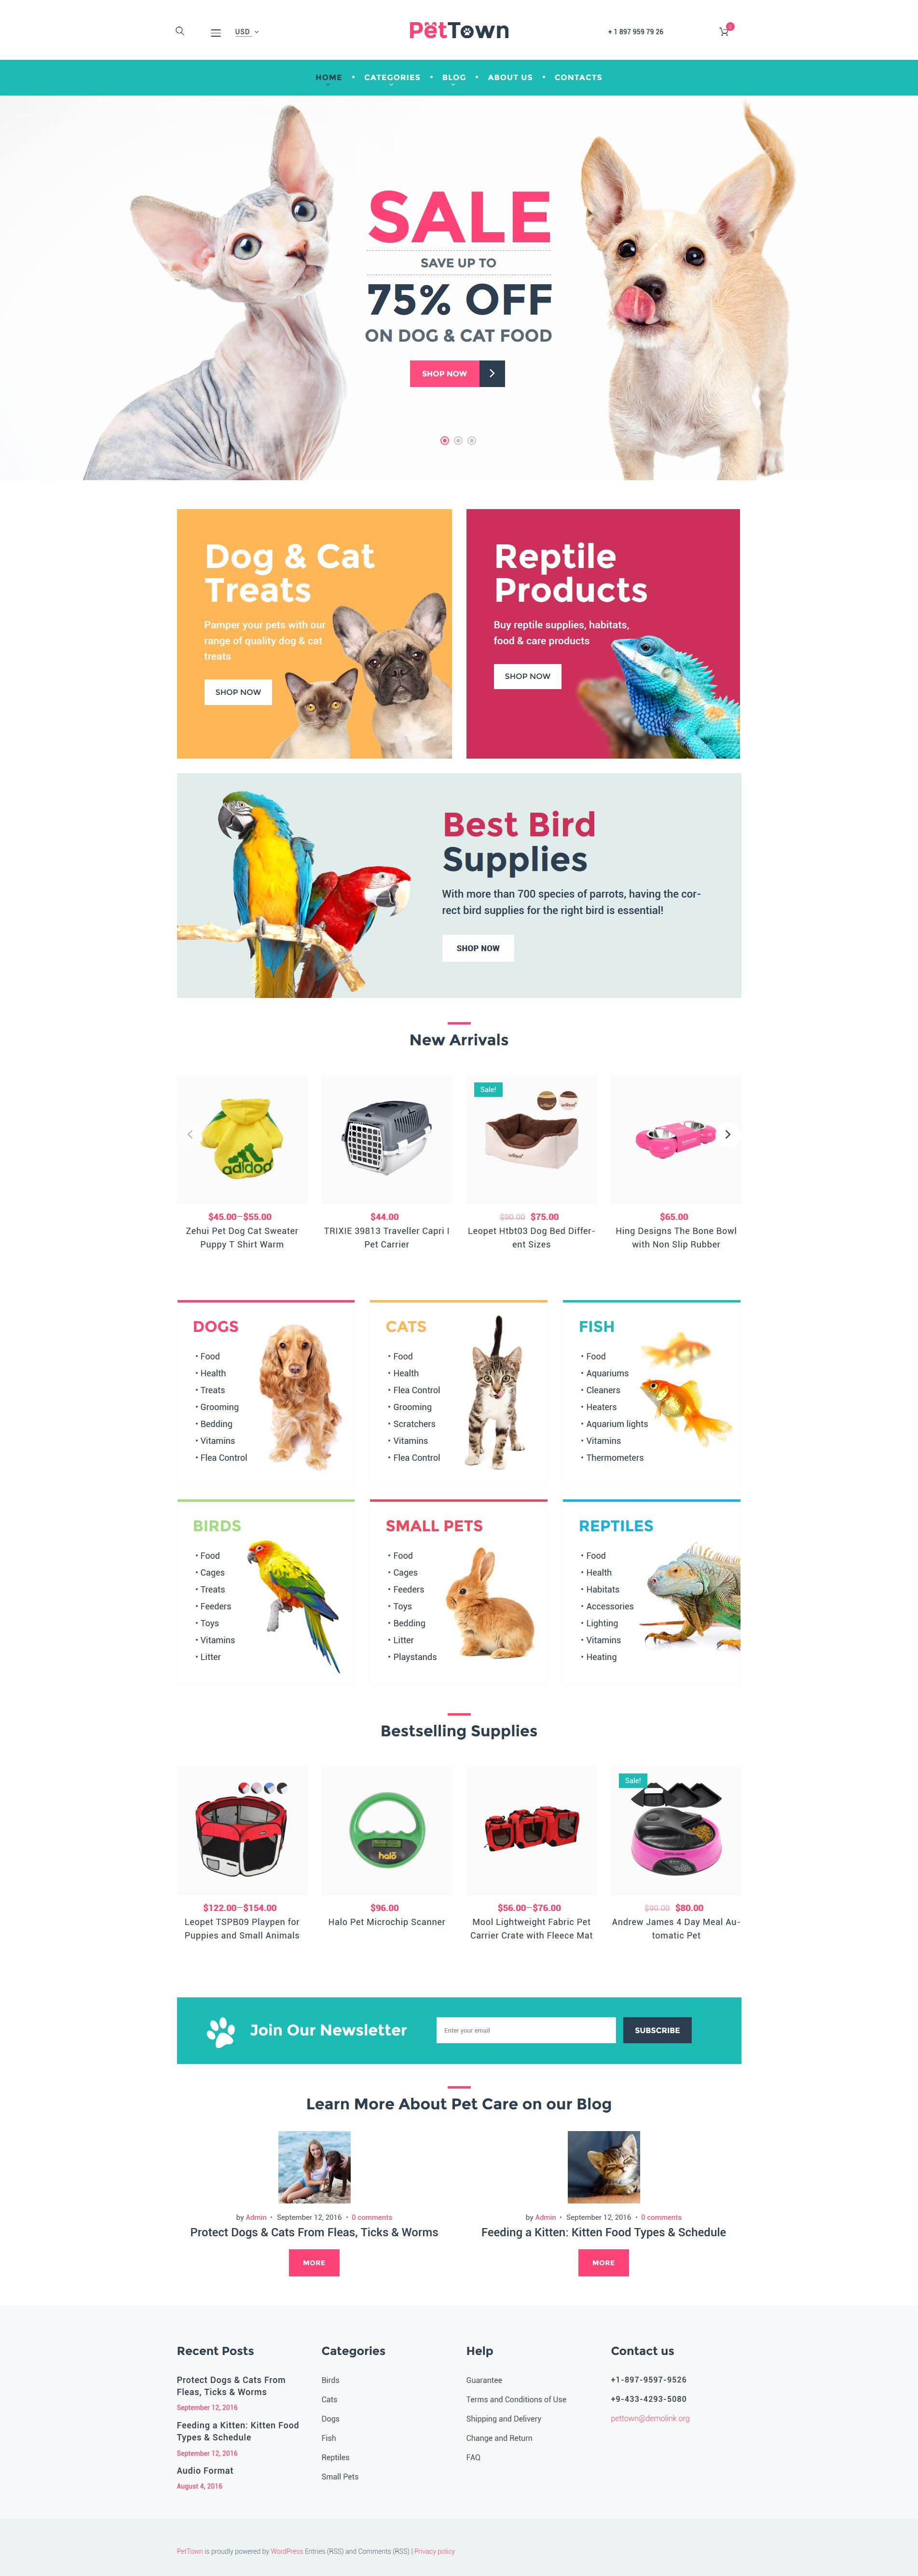 B Pet Shop Woocommerce Theme B Was Developed For Animal Supplies Stores Bright Colors Will Make The Atmosphere On Your Site Pet Store Pet Websites Pet Shop